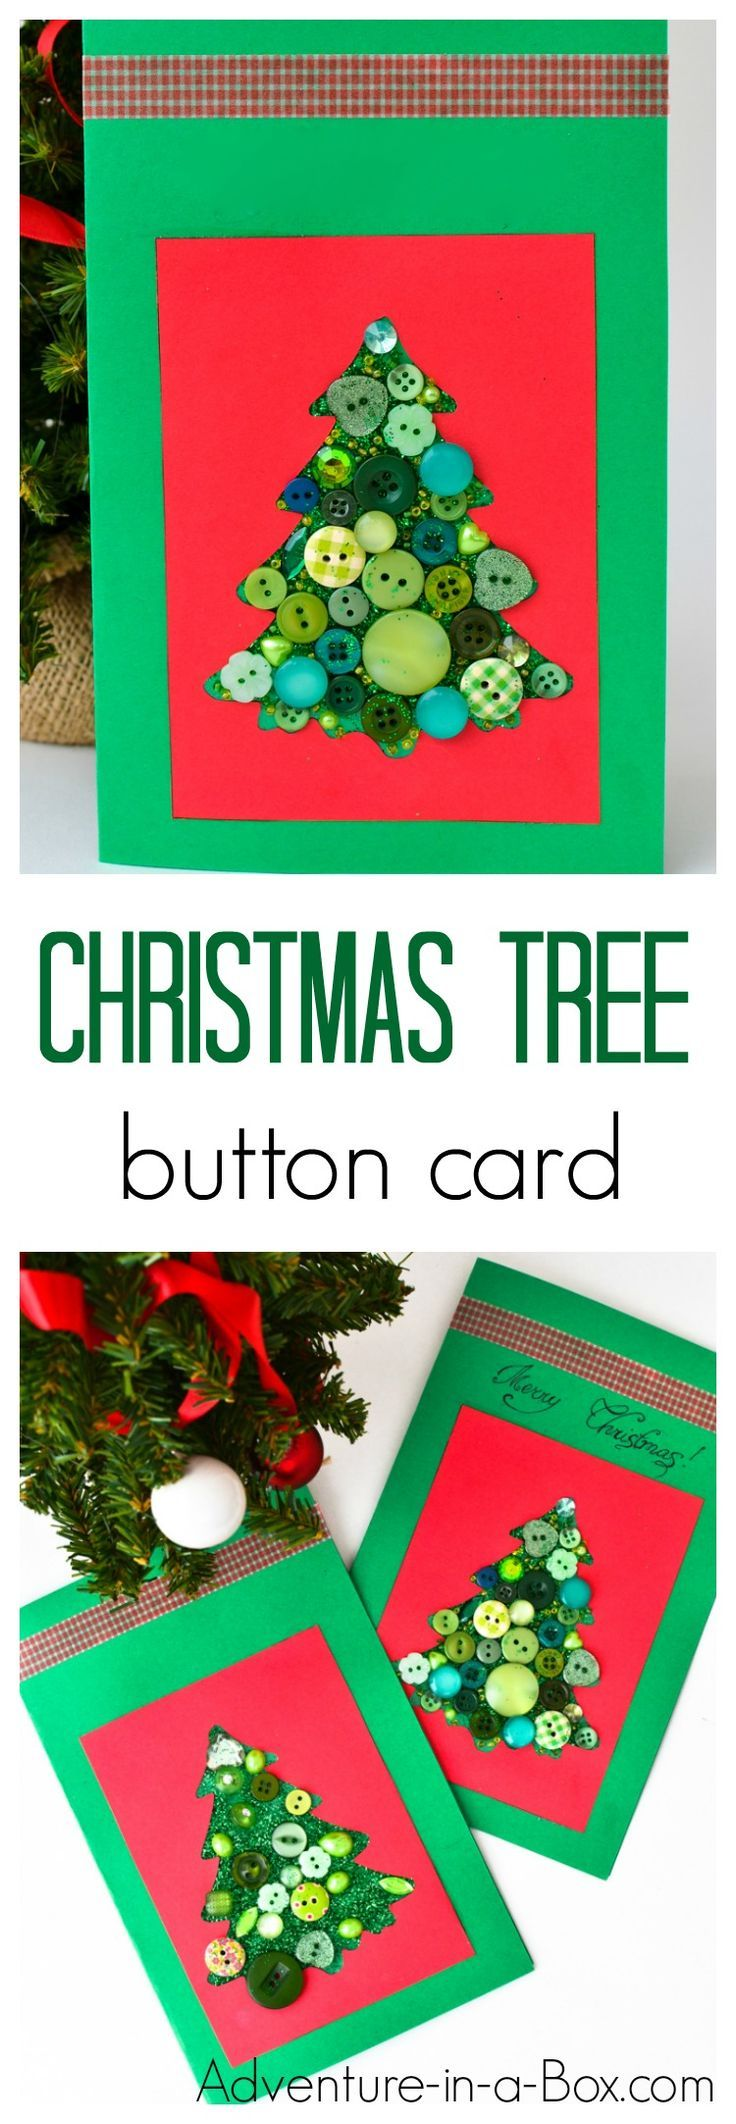 Make a Christmas tree with buttons and put it on a handmade Christmas card. Even toddlers and kids can make this winter craft!